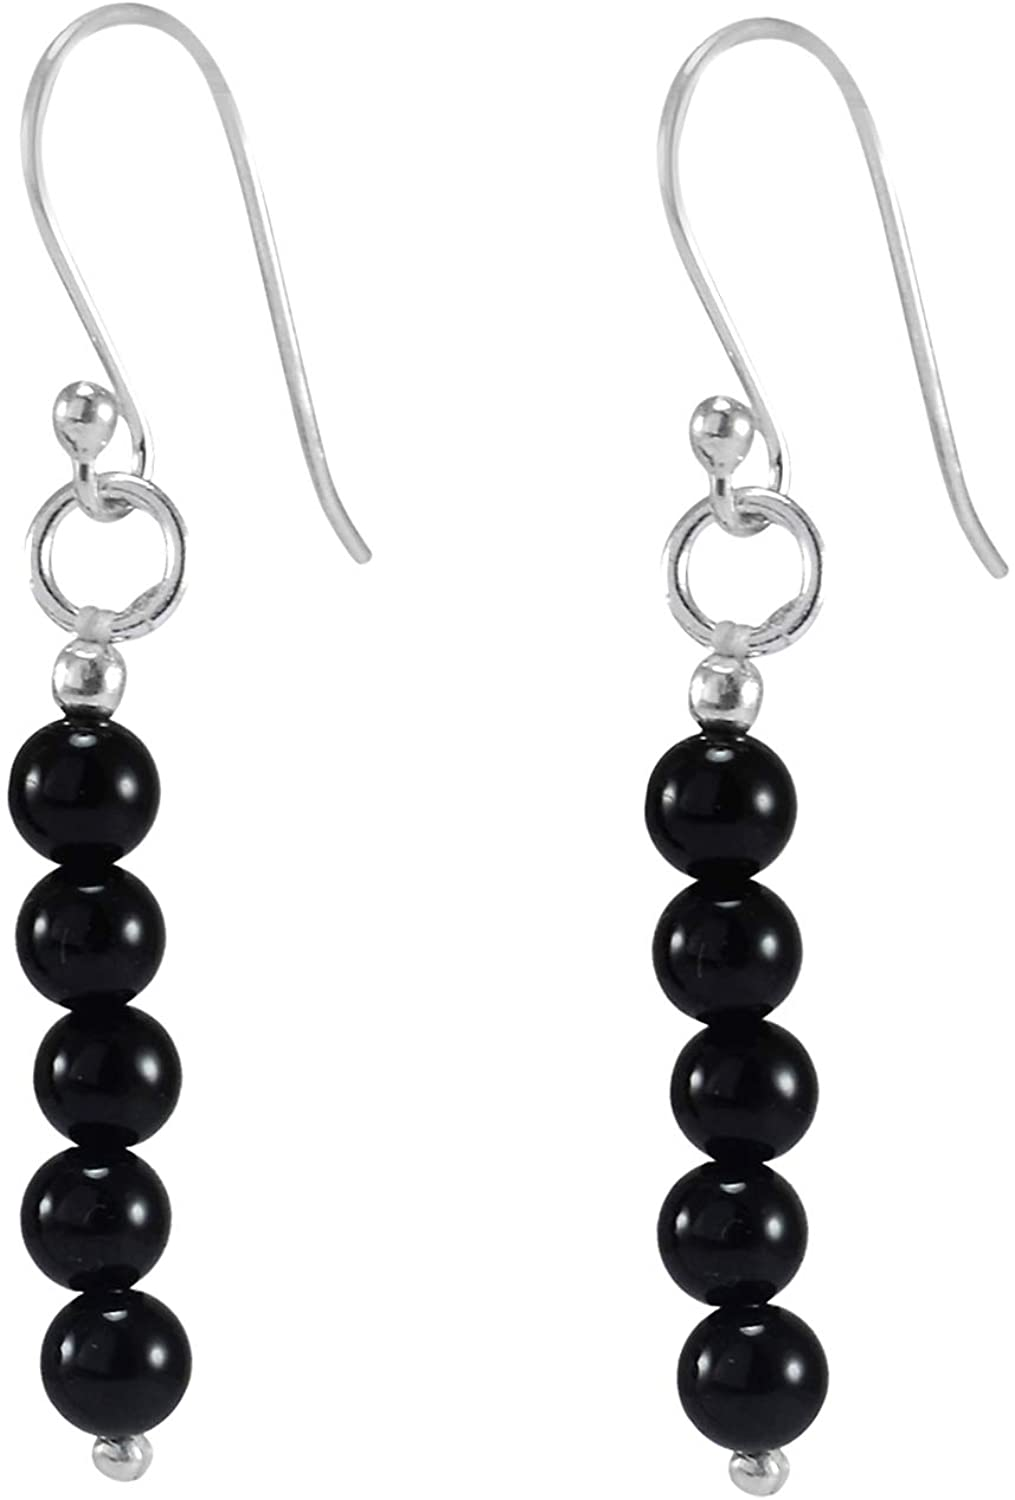 Saamarth Impex Handmade Jewelry Manufacturer Black Onyx/ 925 Sterling Silver/ 5 Bead Stone Round Beaded/Dangle Long Earring Jaipur Rajasthan India